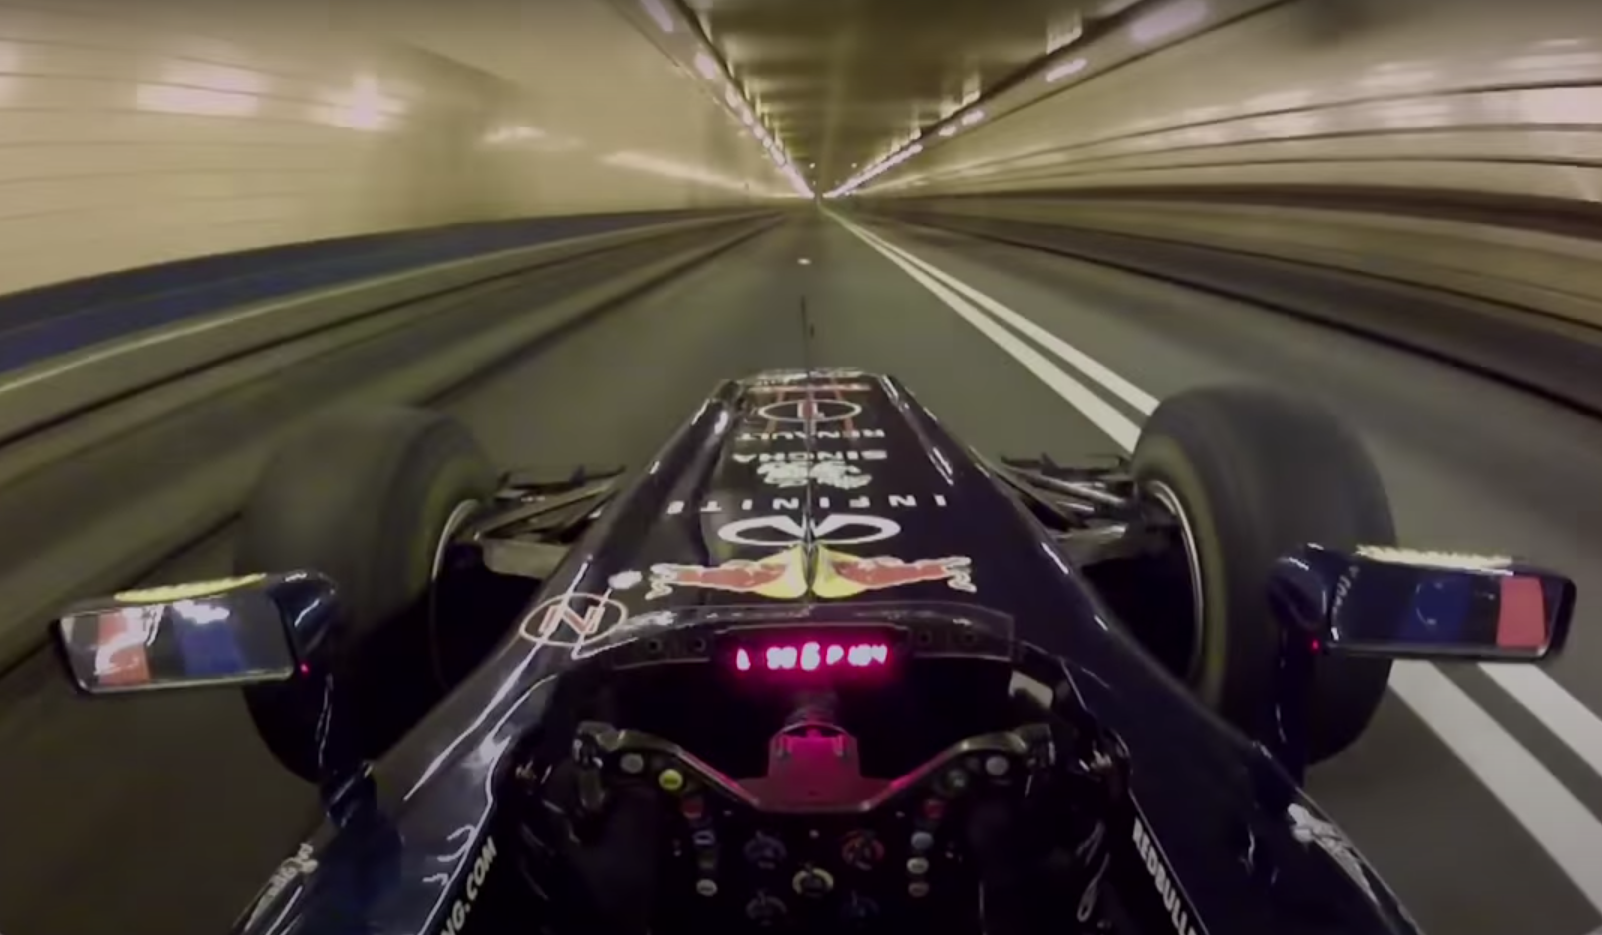 The Sound of A Formula 1 Car Going 300 KM/H Through A Tunnel